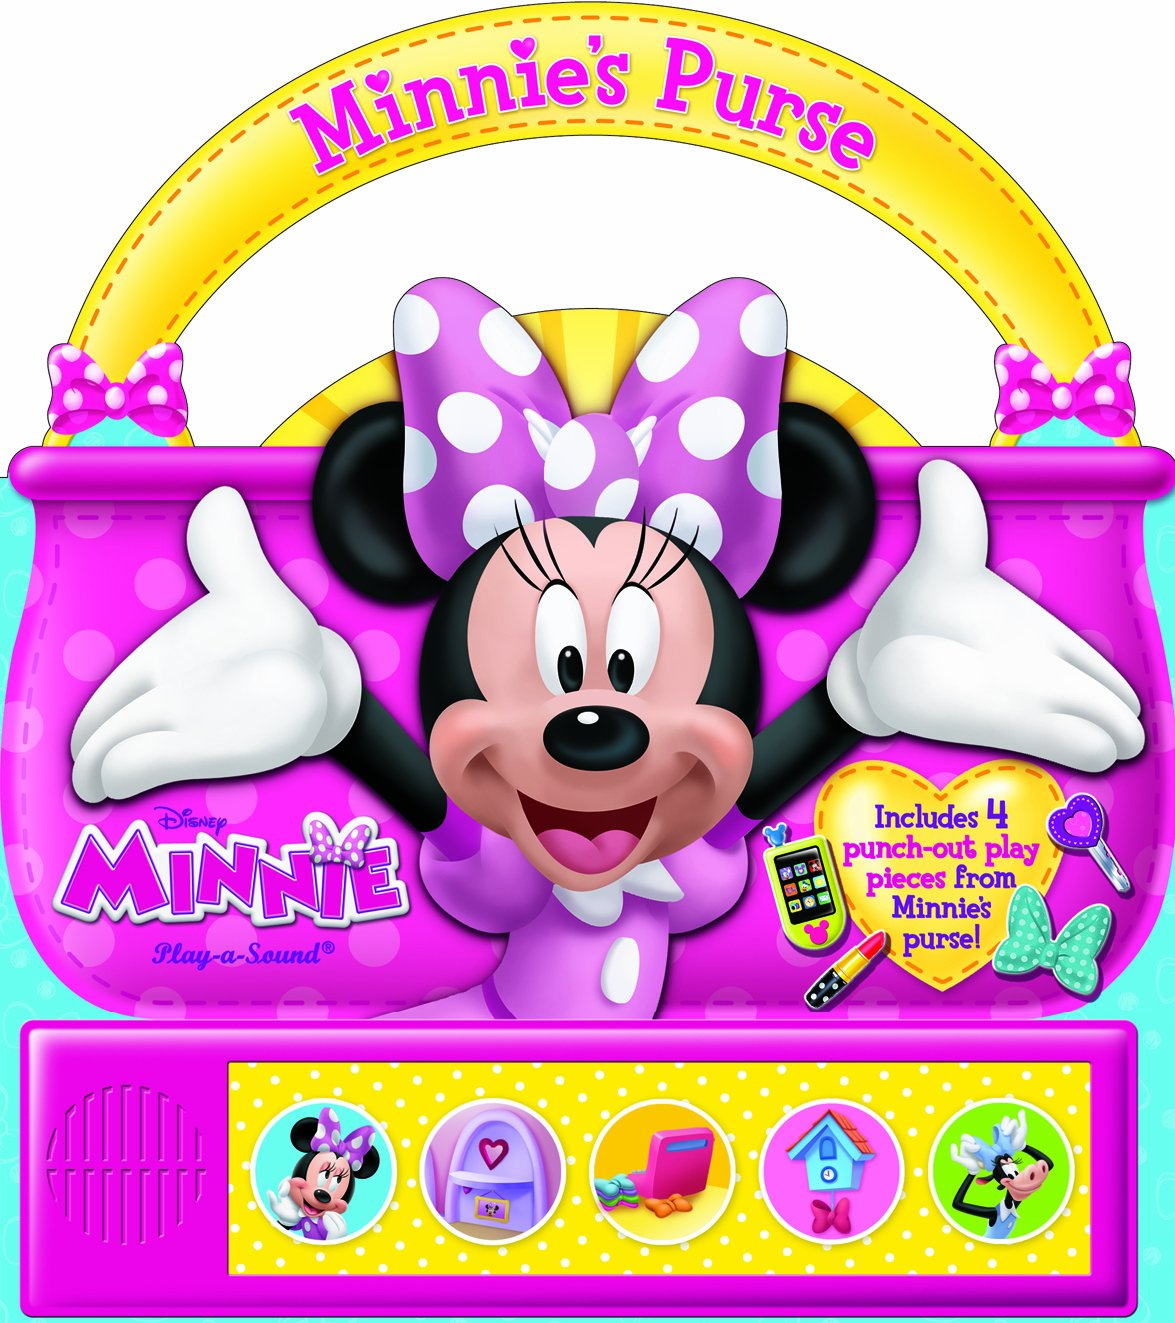 Disney Minnie: Minnie Mouse Purse Play A Sound Board Book Pi Kids 9781450861731 (Minnie: Play A Sound) by Publications International, Ltd